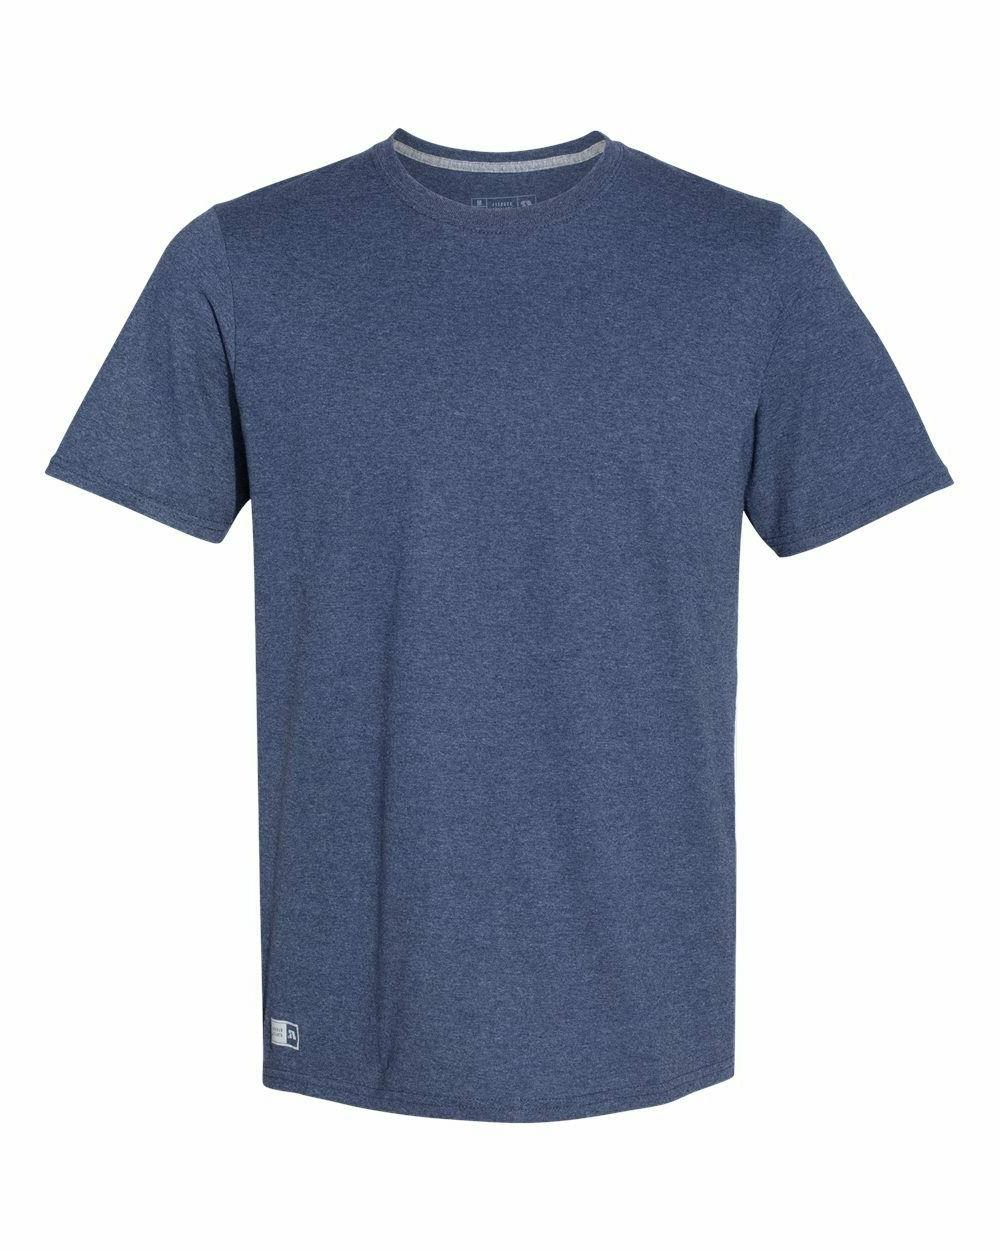 Russell - Essential Performance Tee, Sports T-Shirt, S-3XL